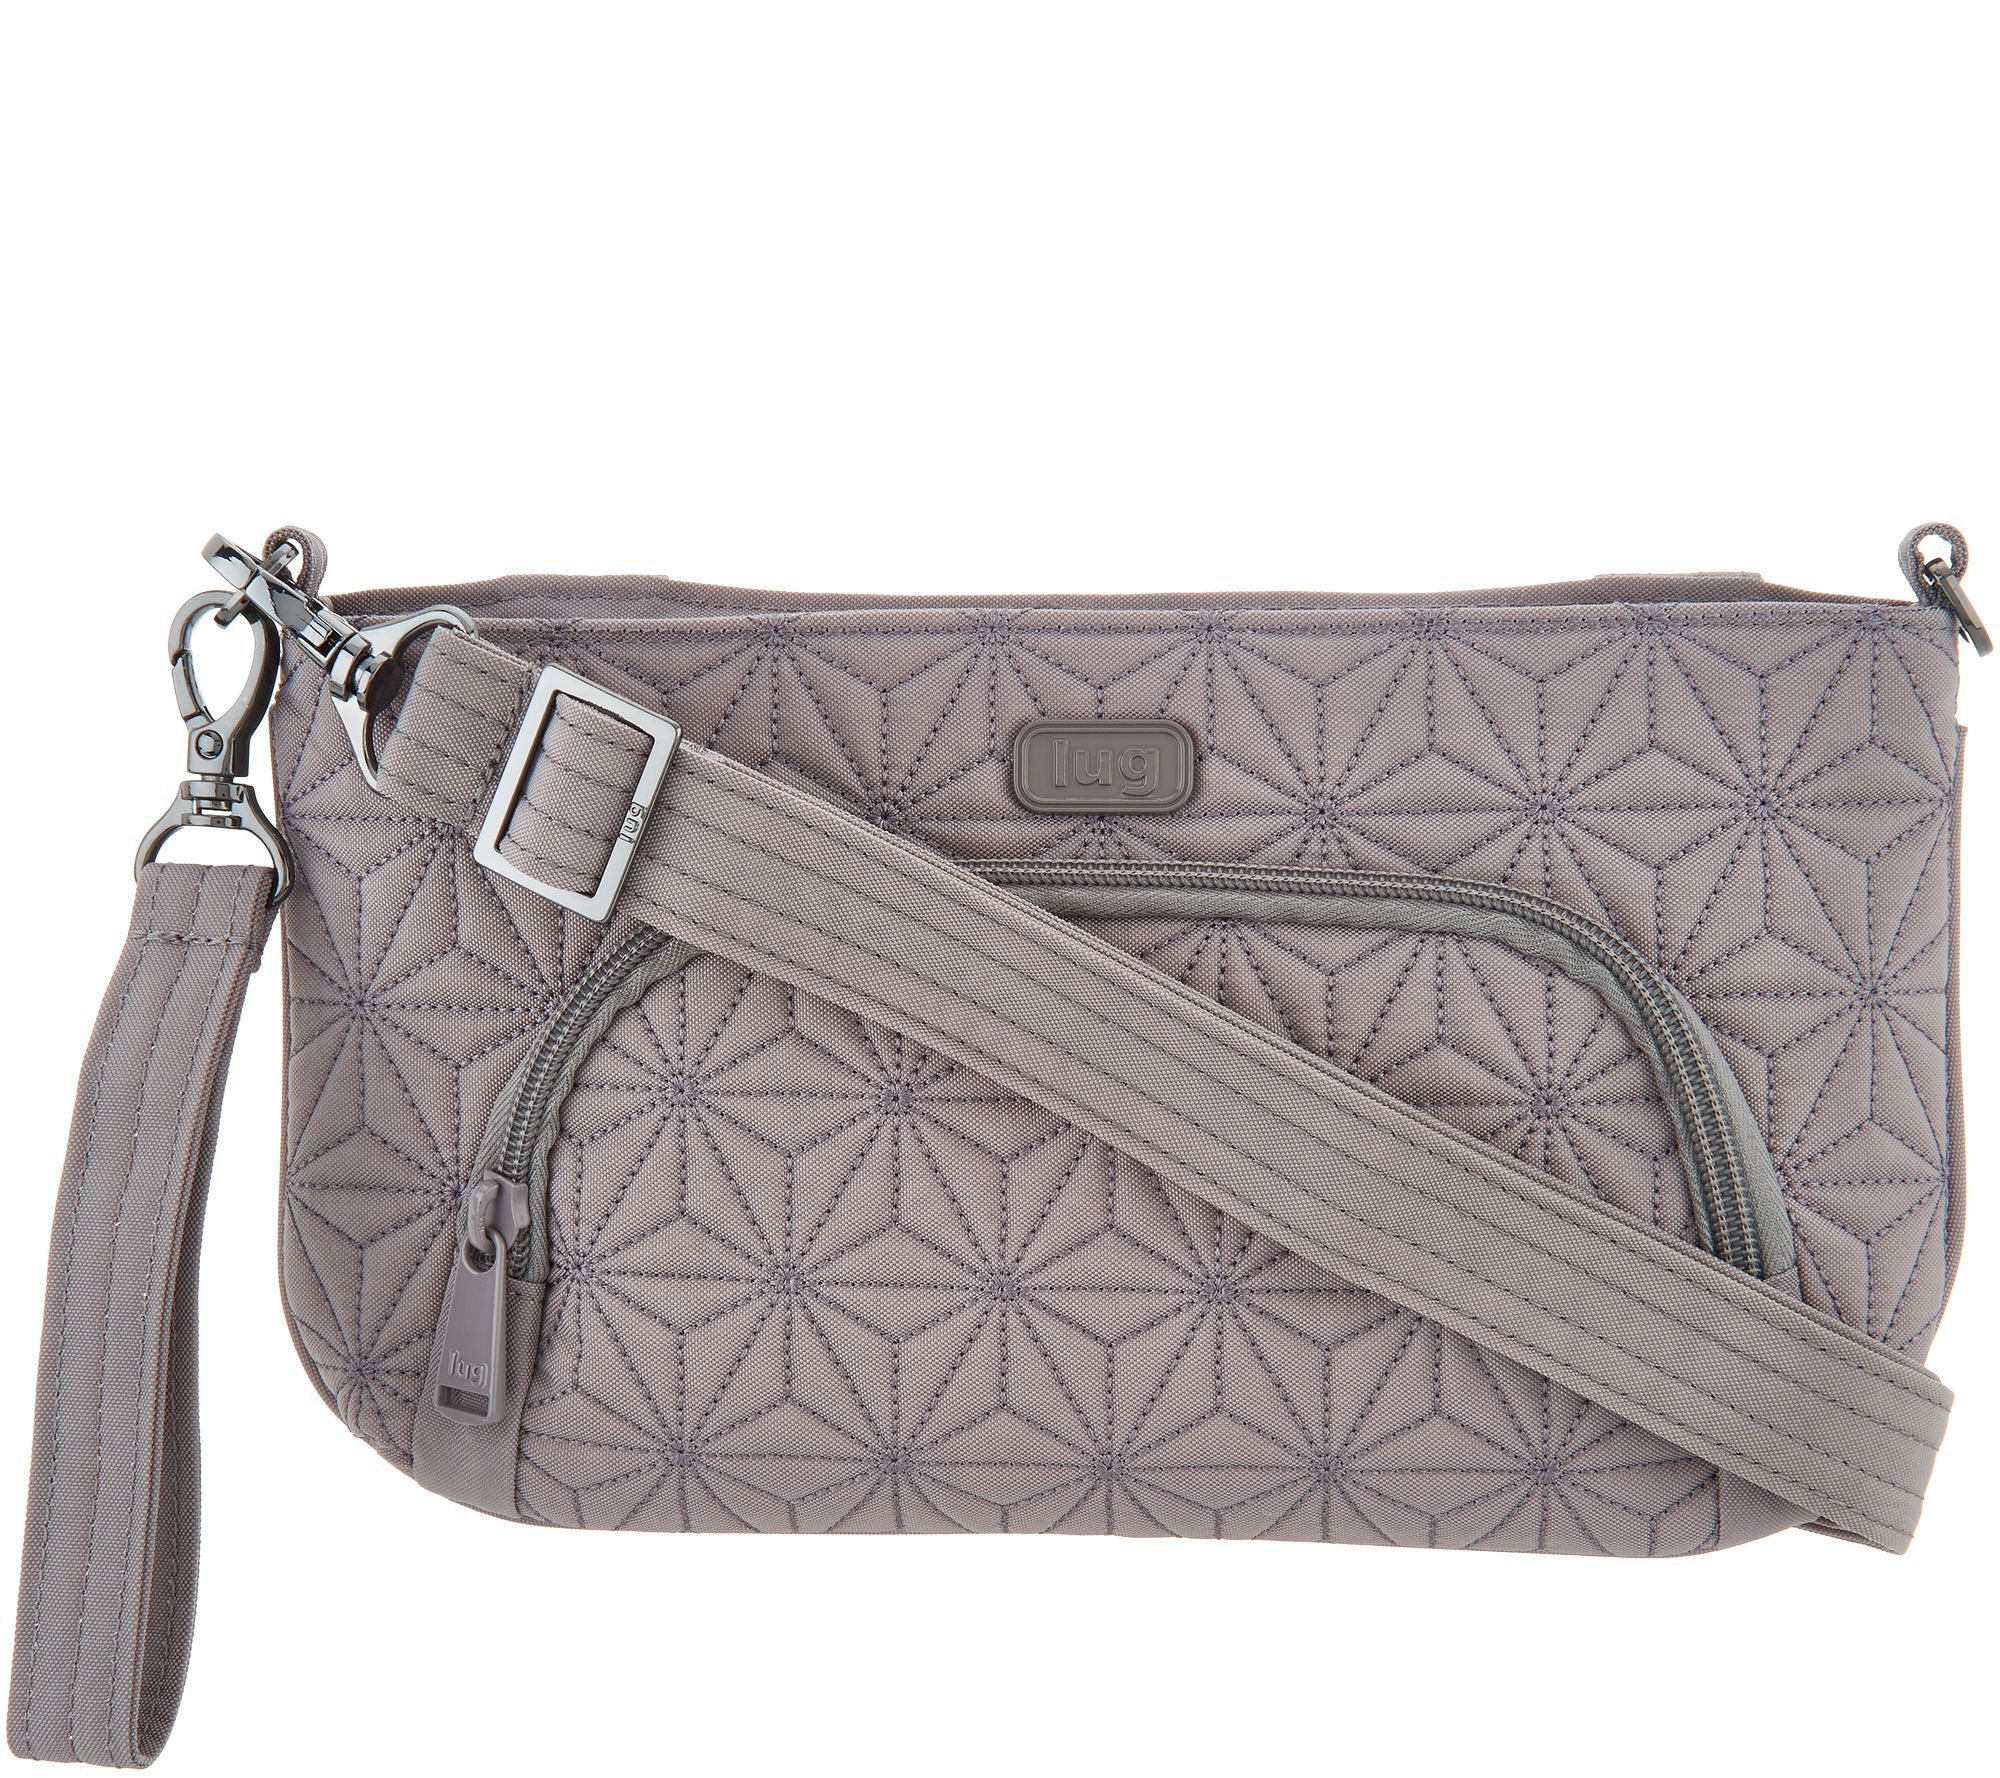 df3a5af9ac52 Cross Body Bags. A petite bag with plenty to offer